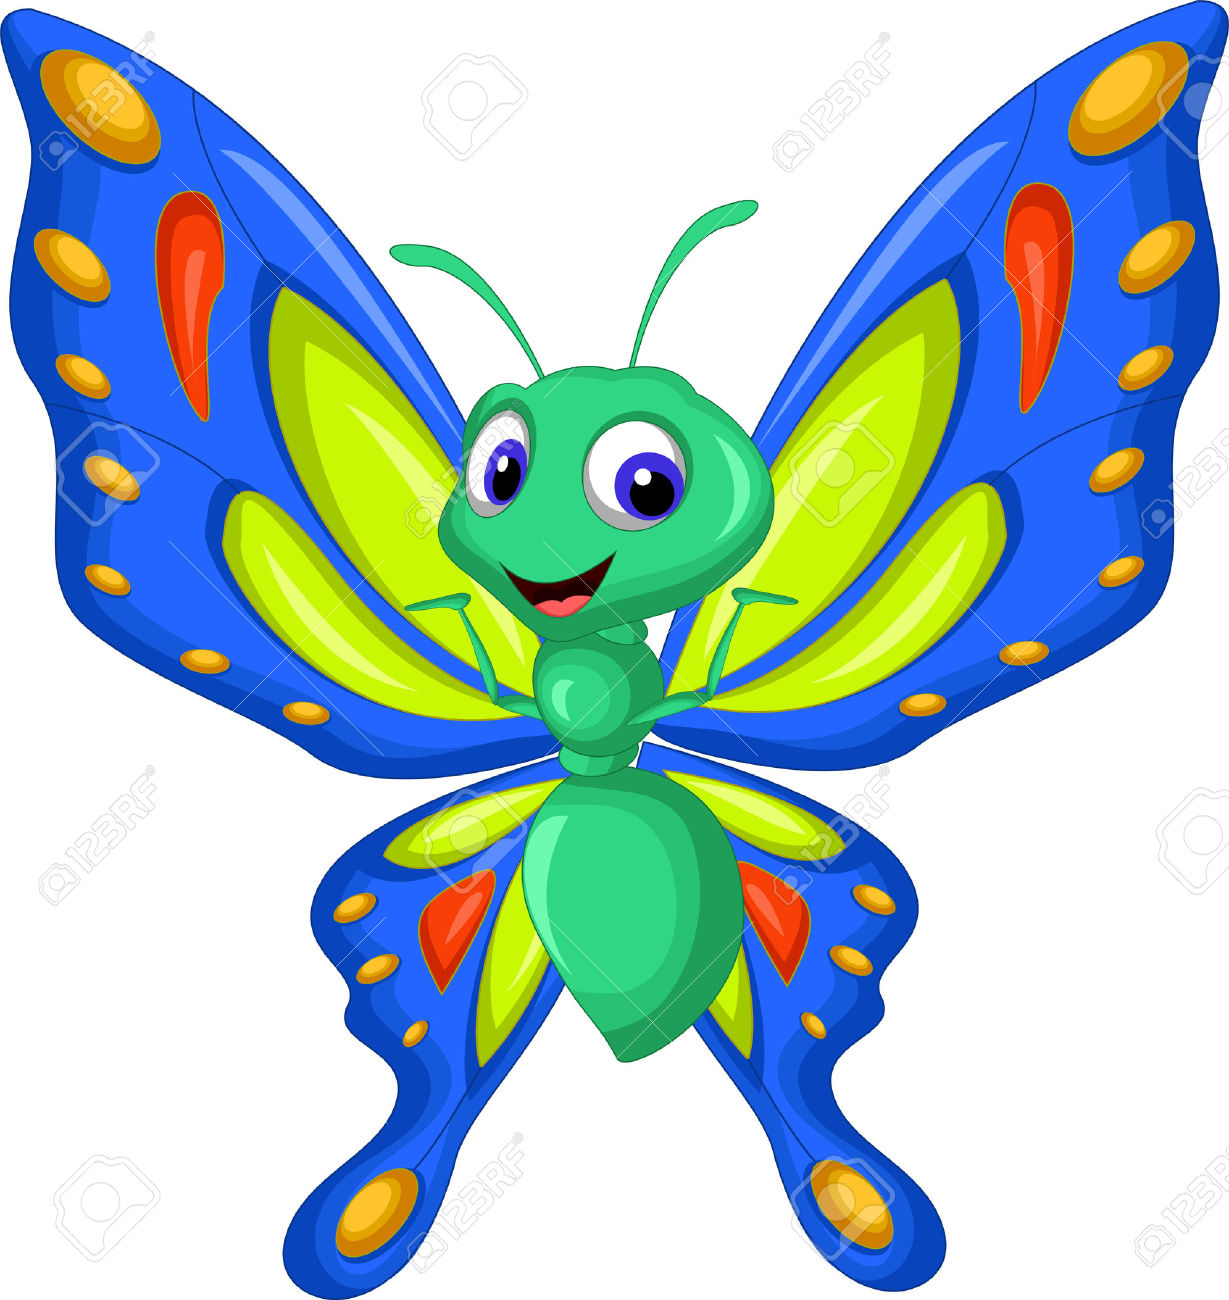 1229x1300 Papillon Clipart Buterfly Free Collection Download And Share